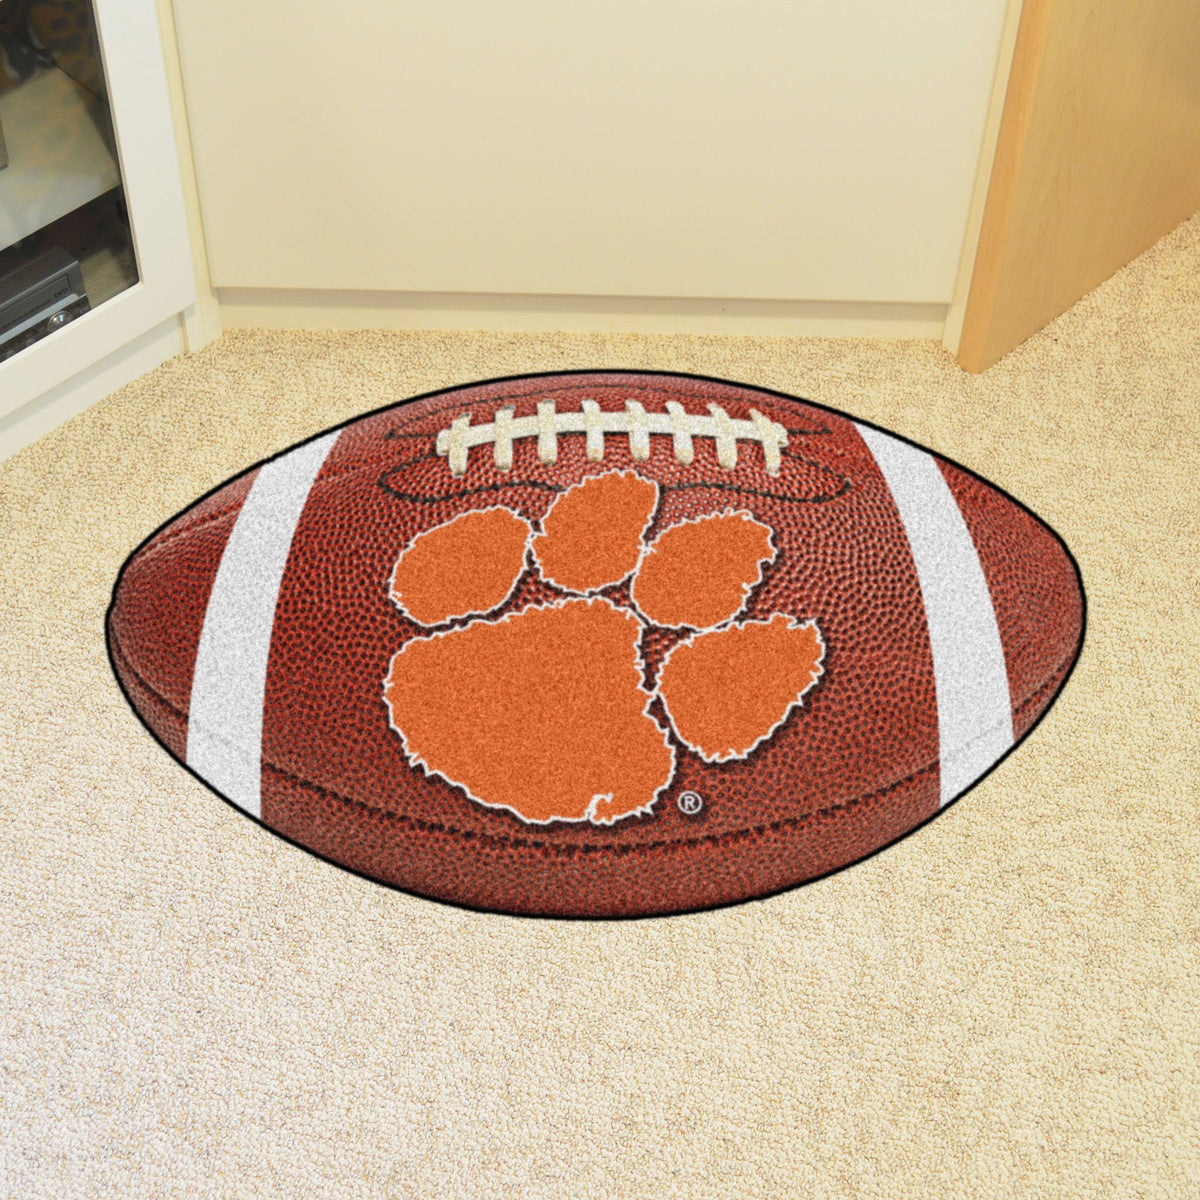 Collegiate - Football Mat: A - K Collegiate Mats, Rectangular Mats, Football Mat, Collegiate, Home Fan Mats Clemson